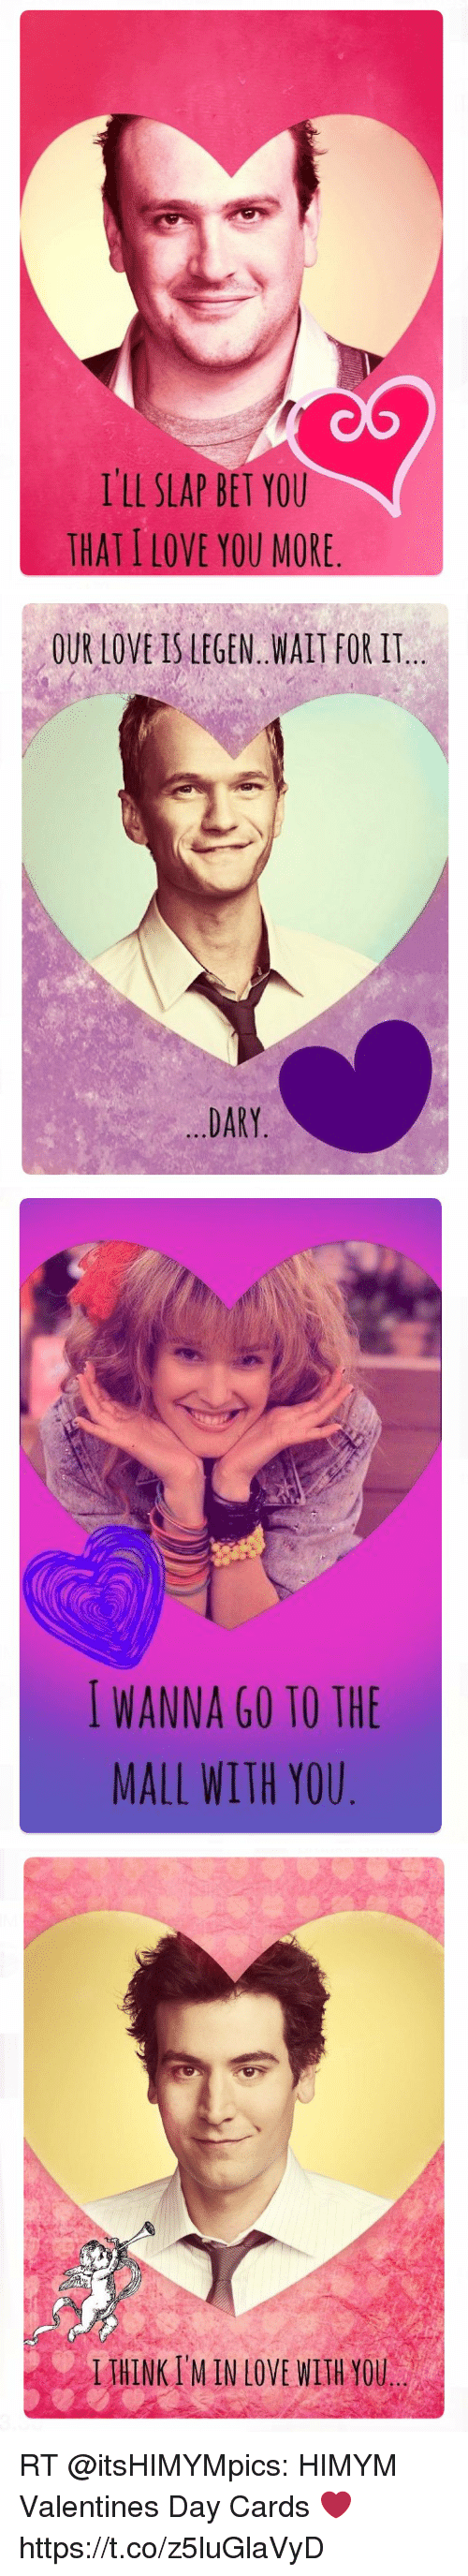 Love, Memes, and Valentine's Day: I'll SLAP BET YOU  THAT ILOVE YOU MORE   OUR LOVE IS LEGEN. WAIT FOR IT  DARY   WANNA GO TO THE  MALL WITH YOU   IIHINKIMIN LOVE WITH YOU RT @itsHIMYMpics: HIMYM Valentines Day Cards ❤️ https://t.co/z5luGlaVyD